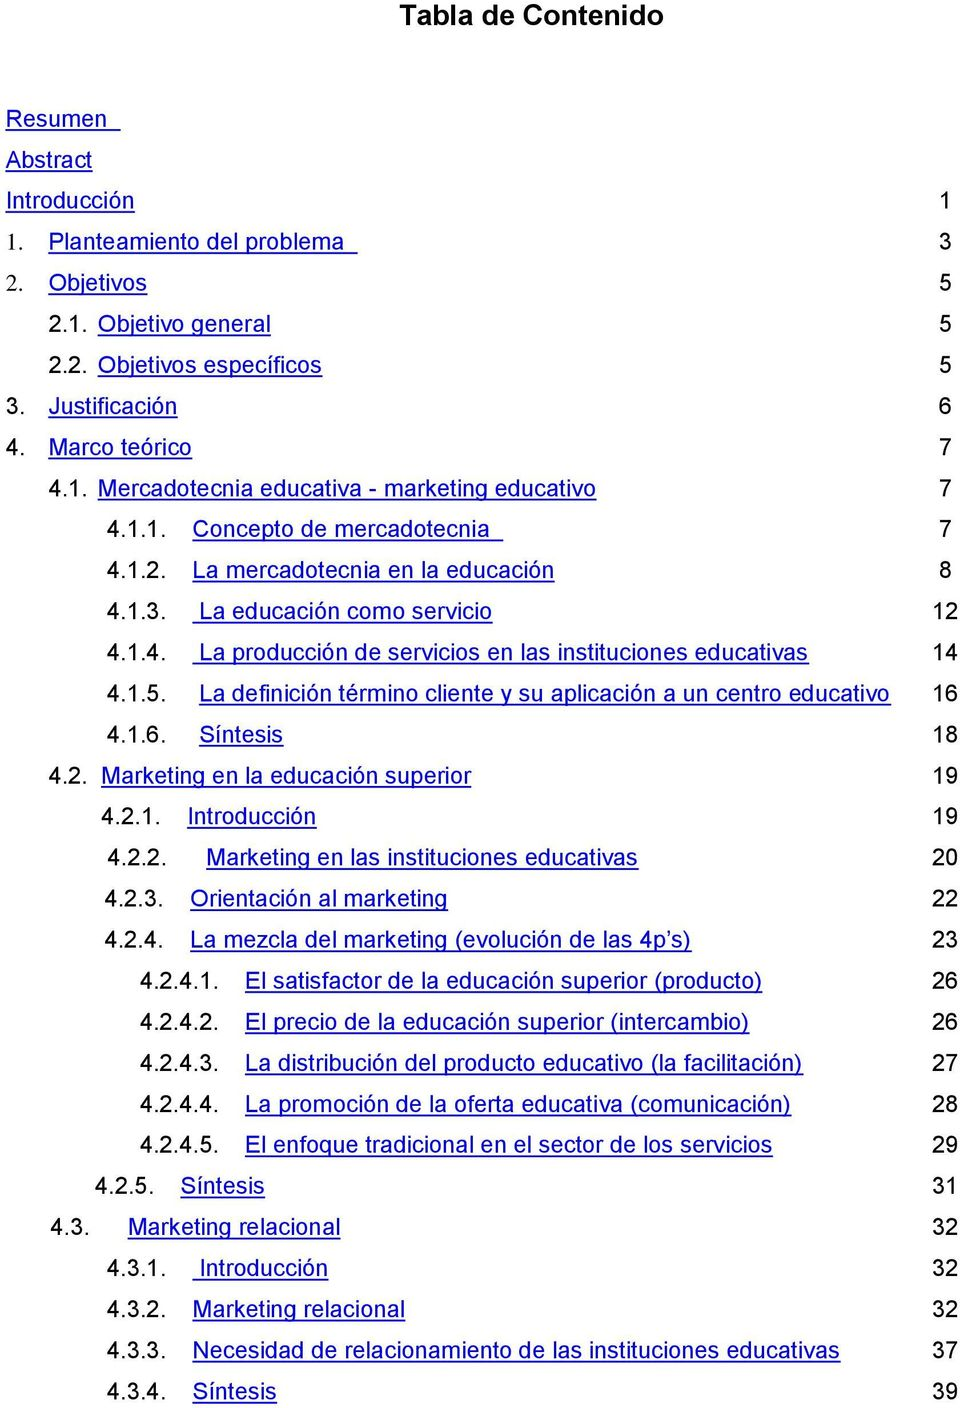 La definición término cliente y su aplicación a un centro educativo 16 4.1.6. Síntesis 18 4.2. Marketing en la educación superior 19 4.2.1. Introducción 19 4.2.2. Marketing en las instituciones educativas 20 4.